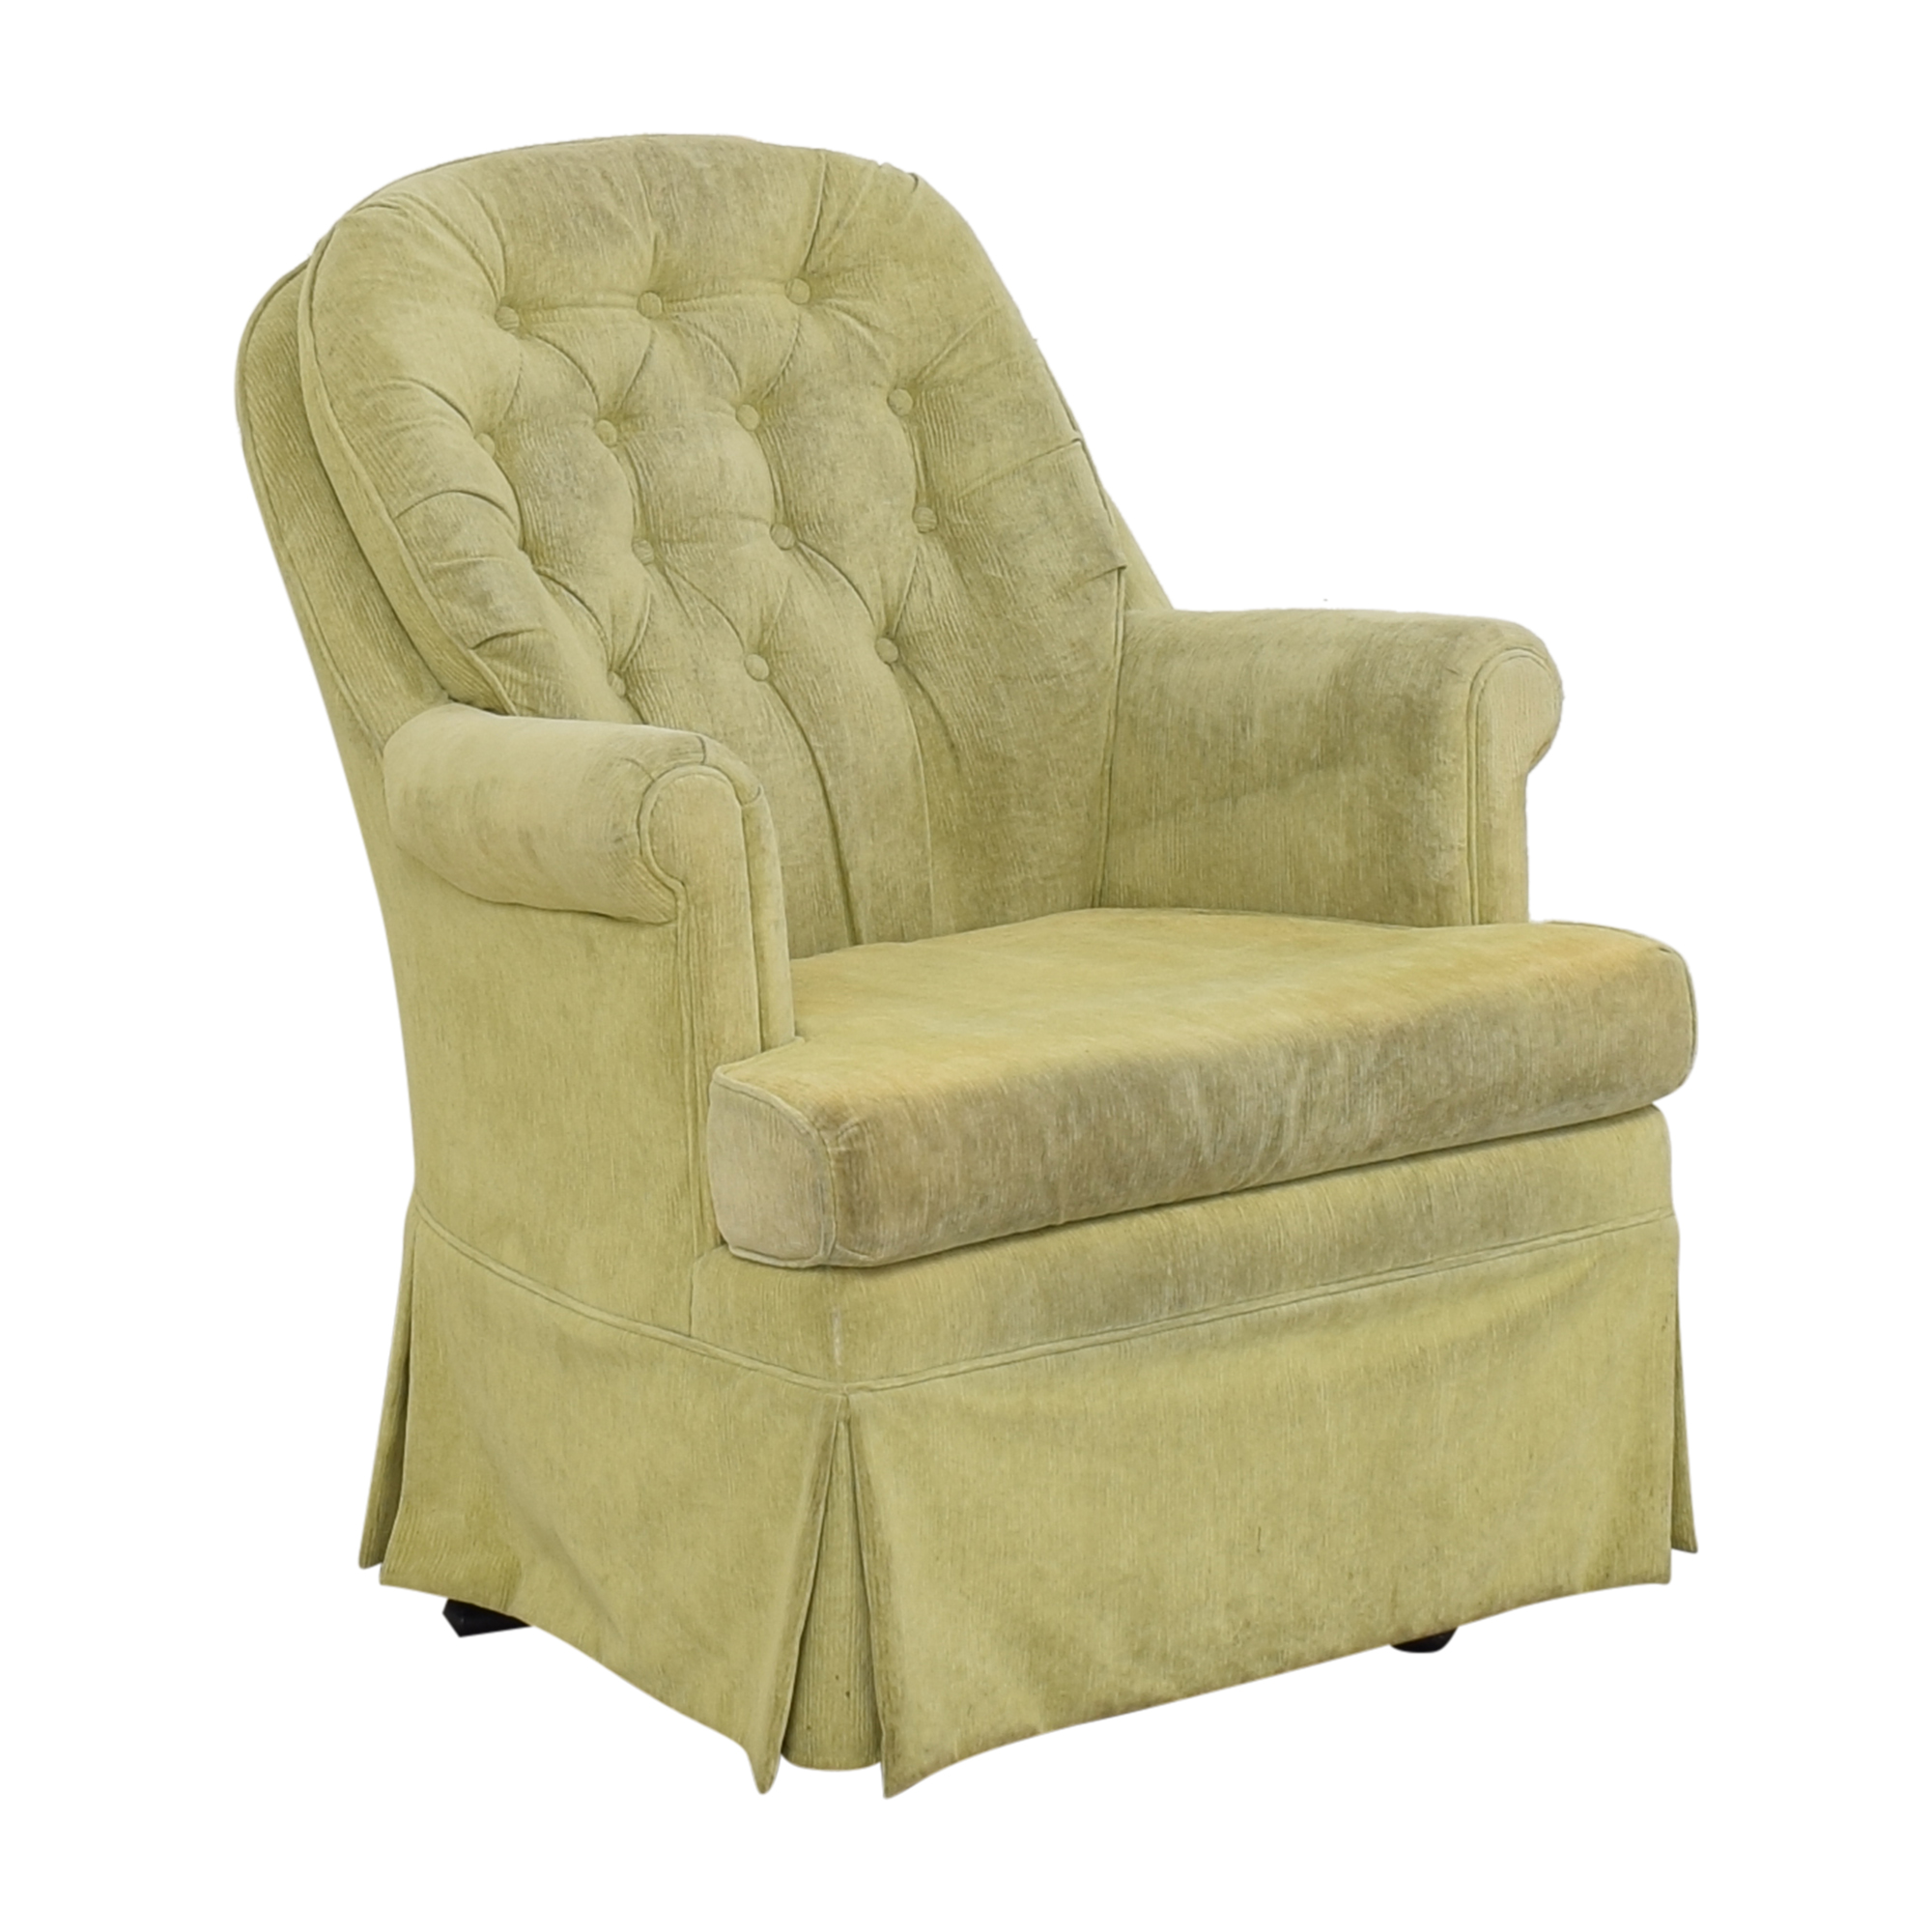 Babyletto Babyletto Nursery Glider and Gliding Ottoman used